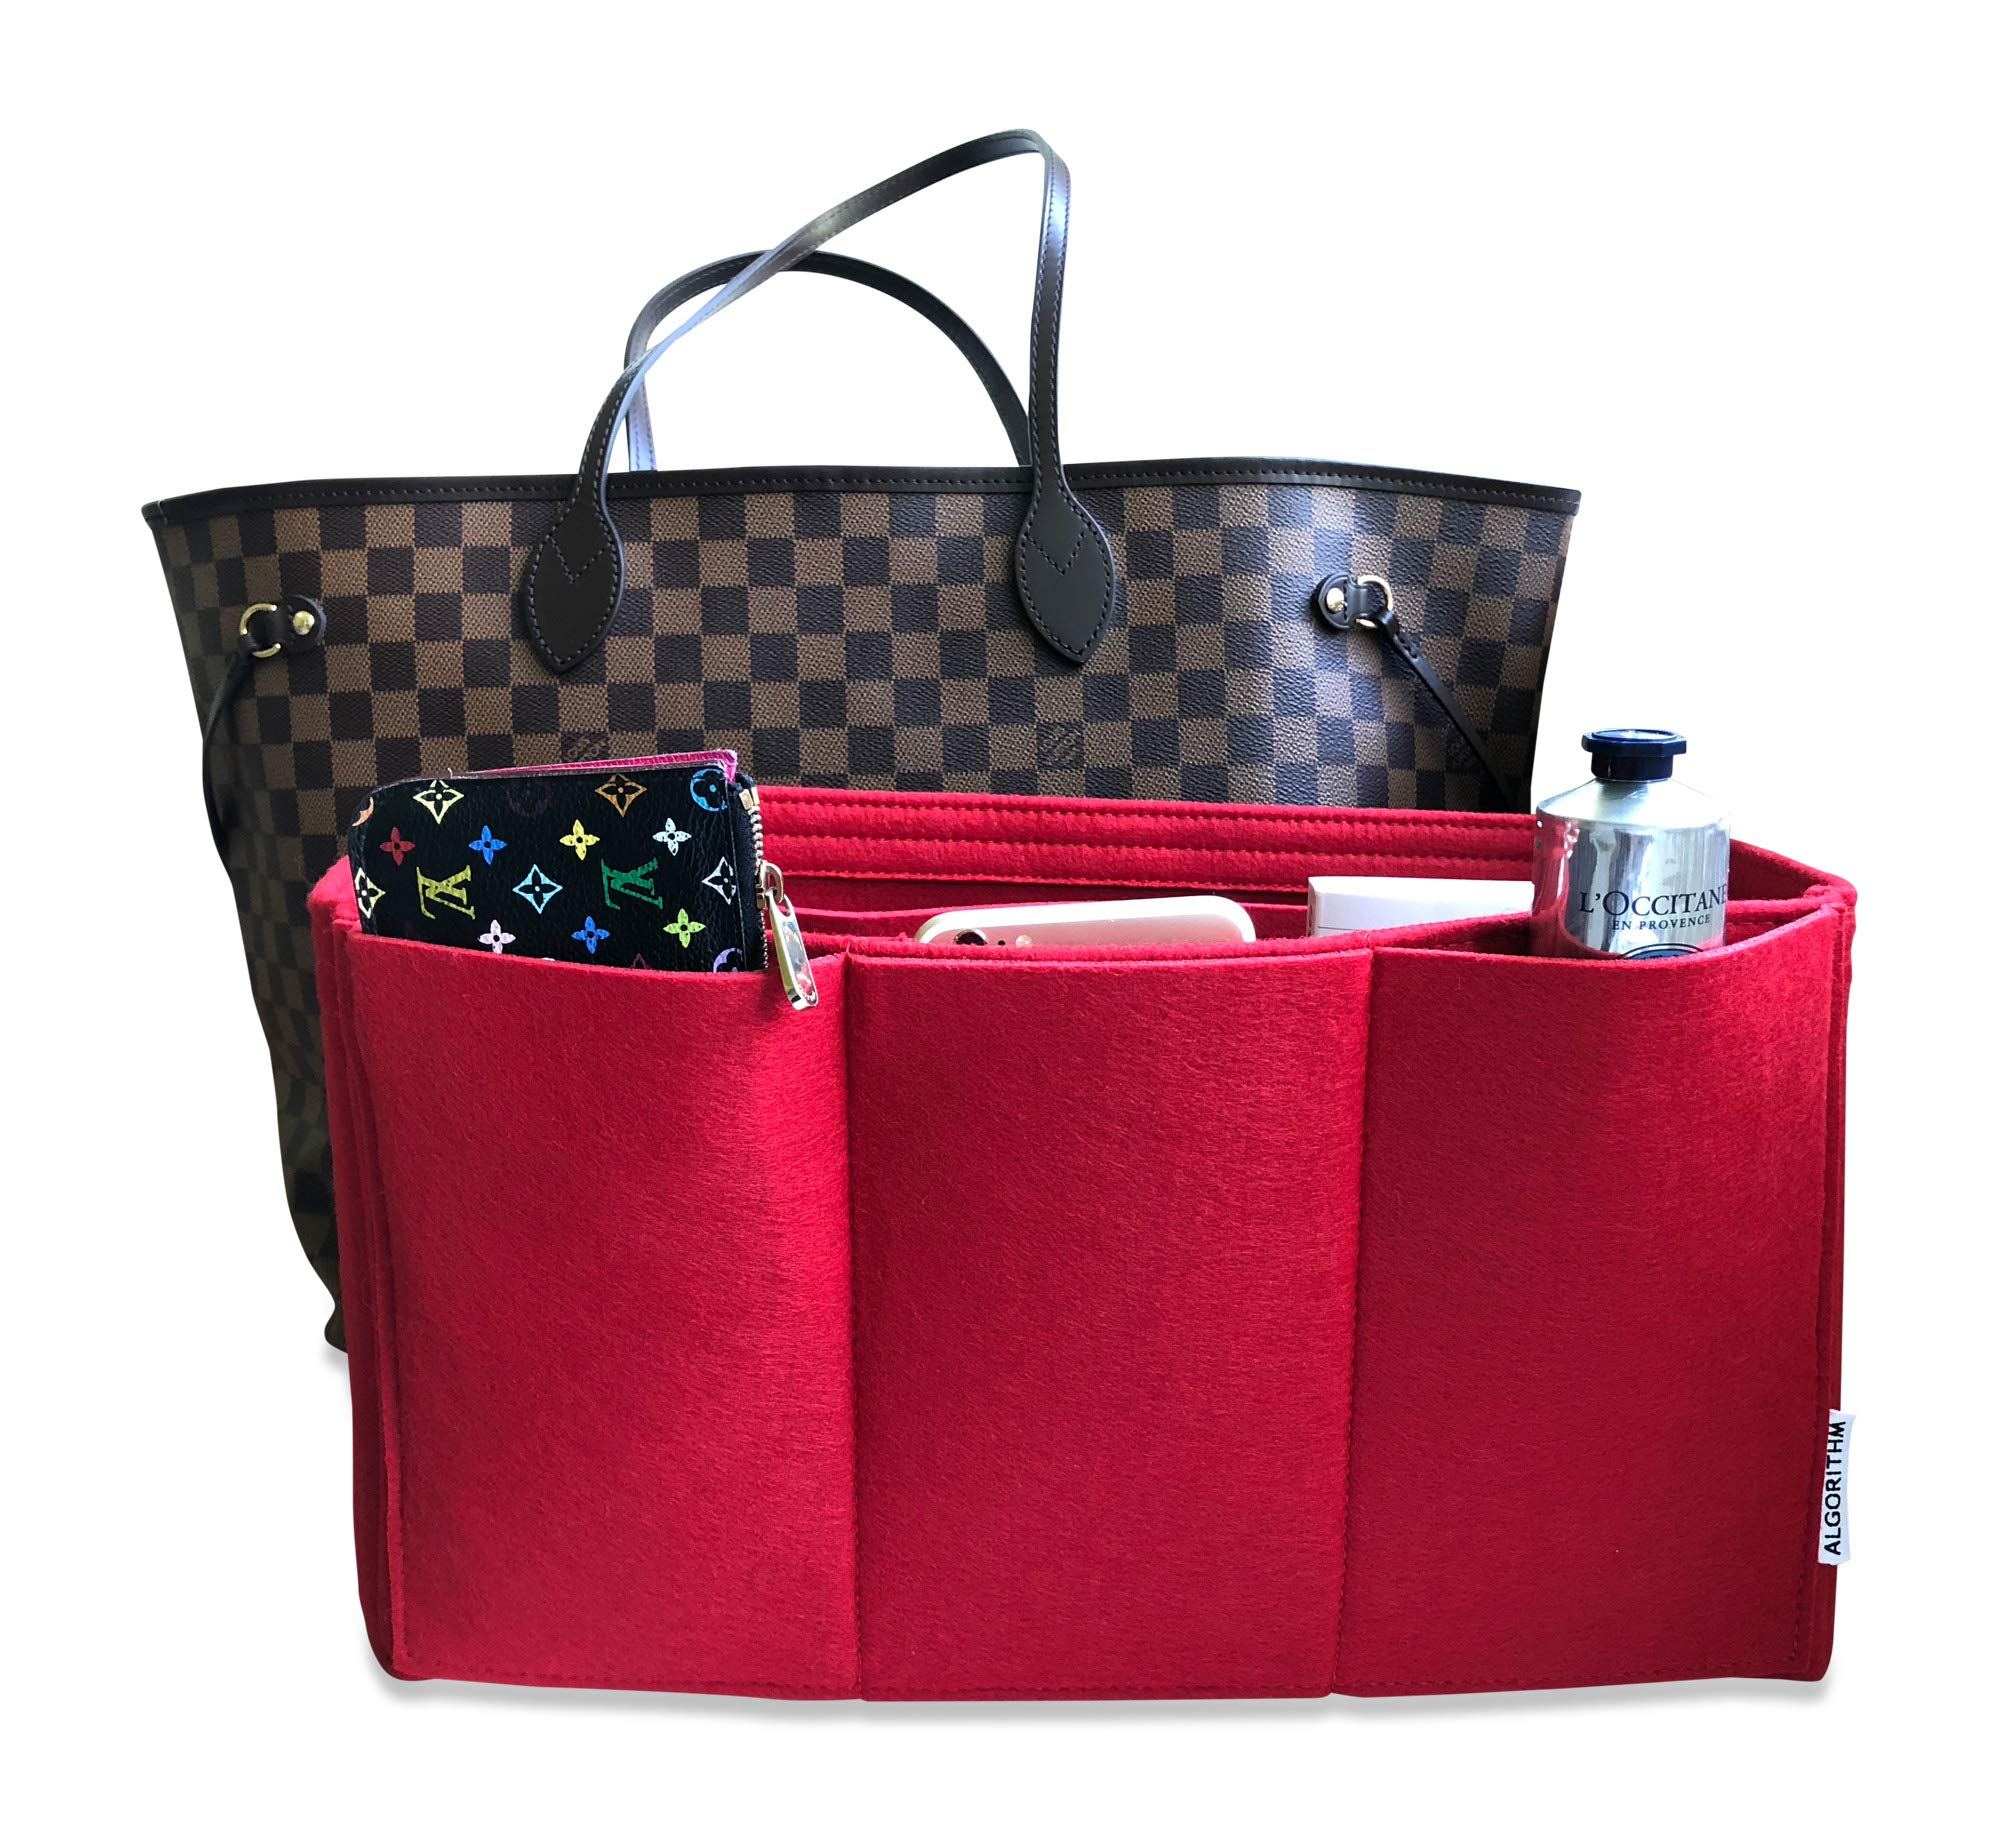 AlgorithmBags Neverfull GM Organizer Purse Insert, Red, 3mm Felt, 12 Pockets (Red)